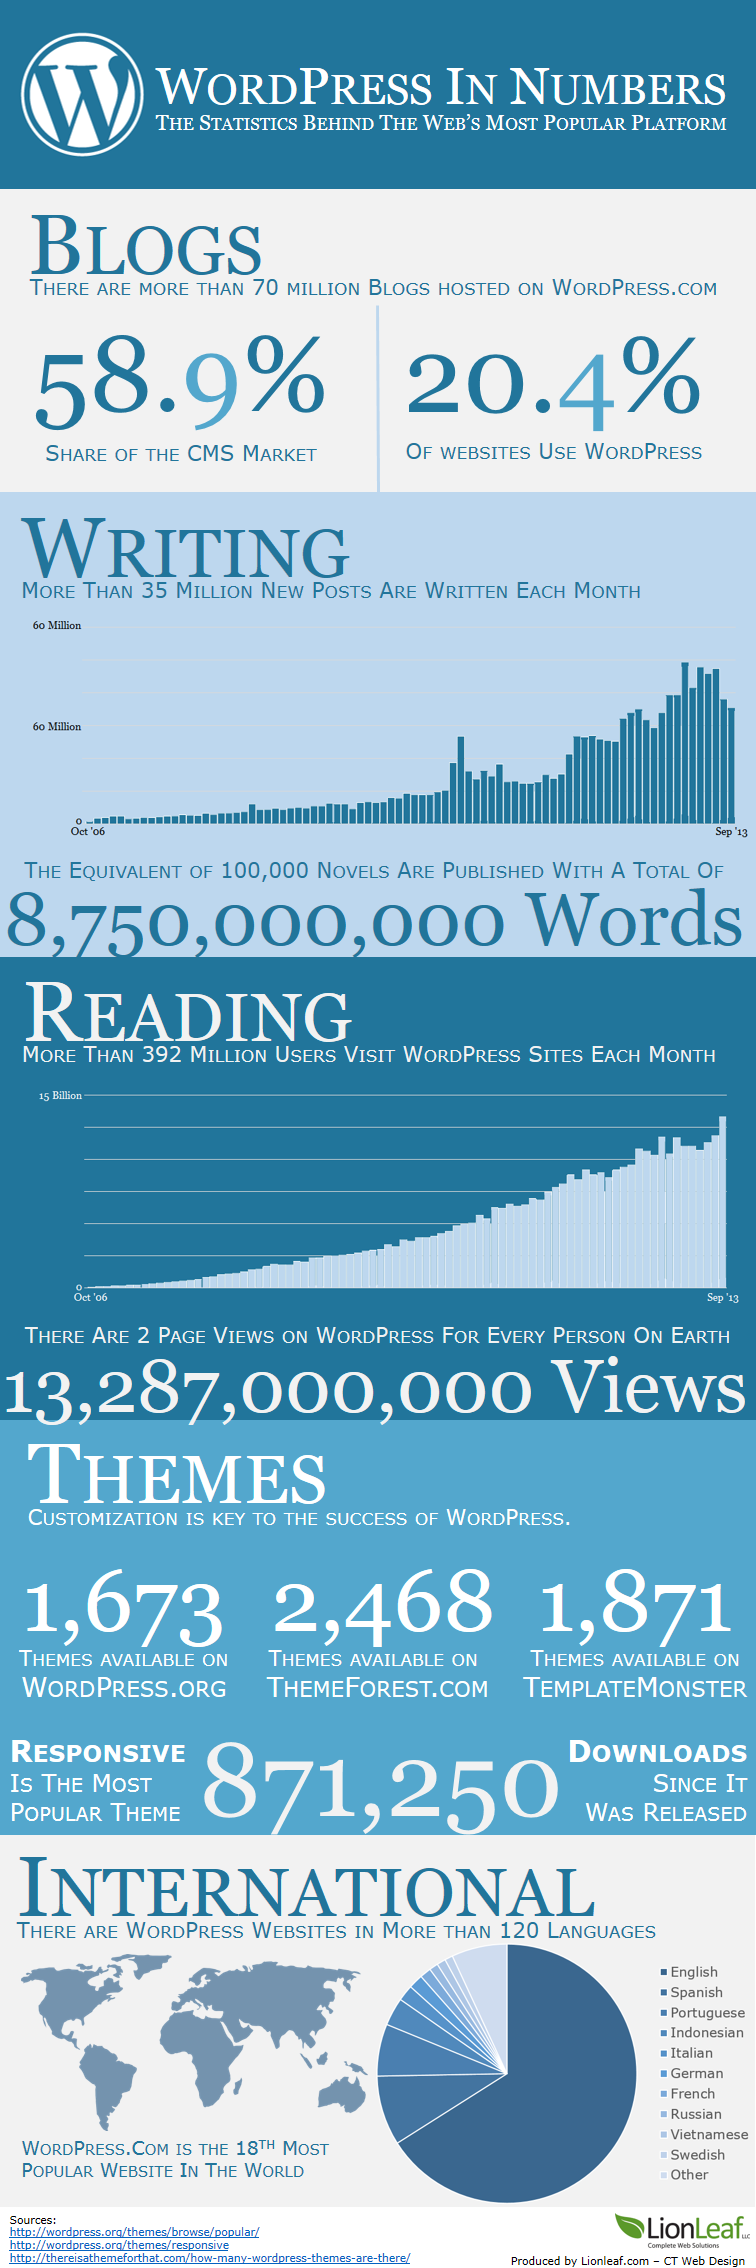 WordPress in Numbers - infographic - Pinpoint Digital